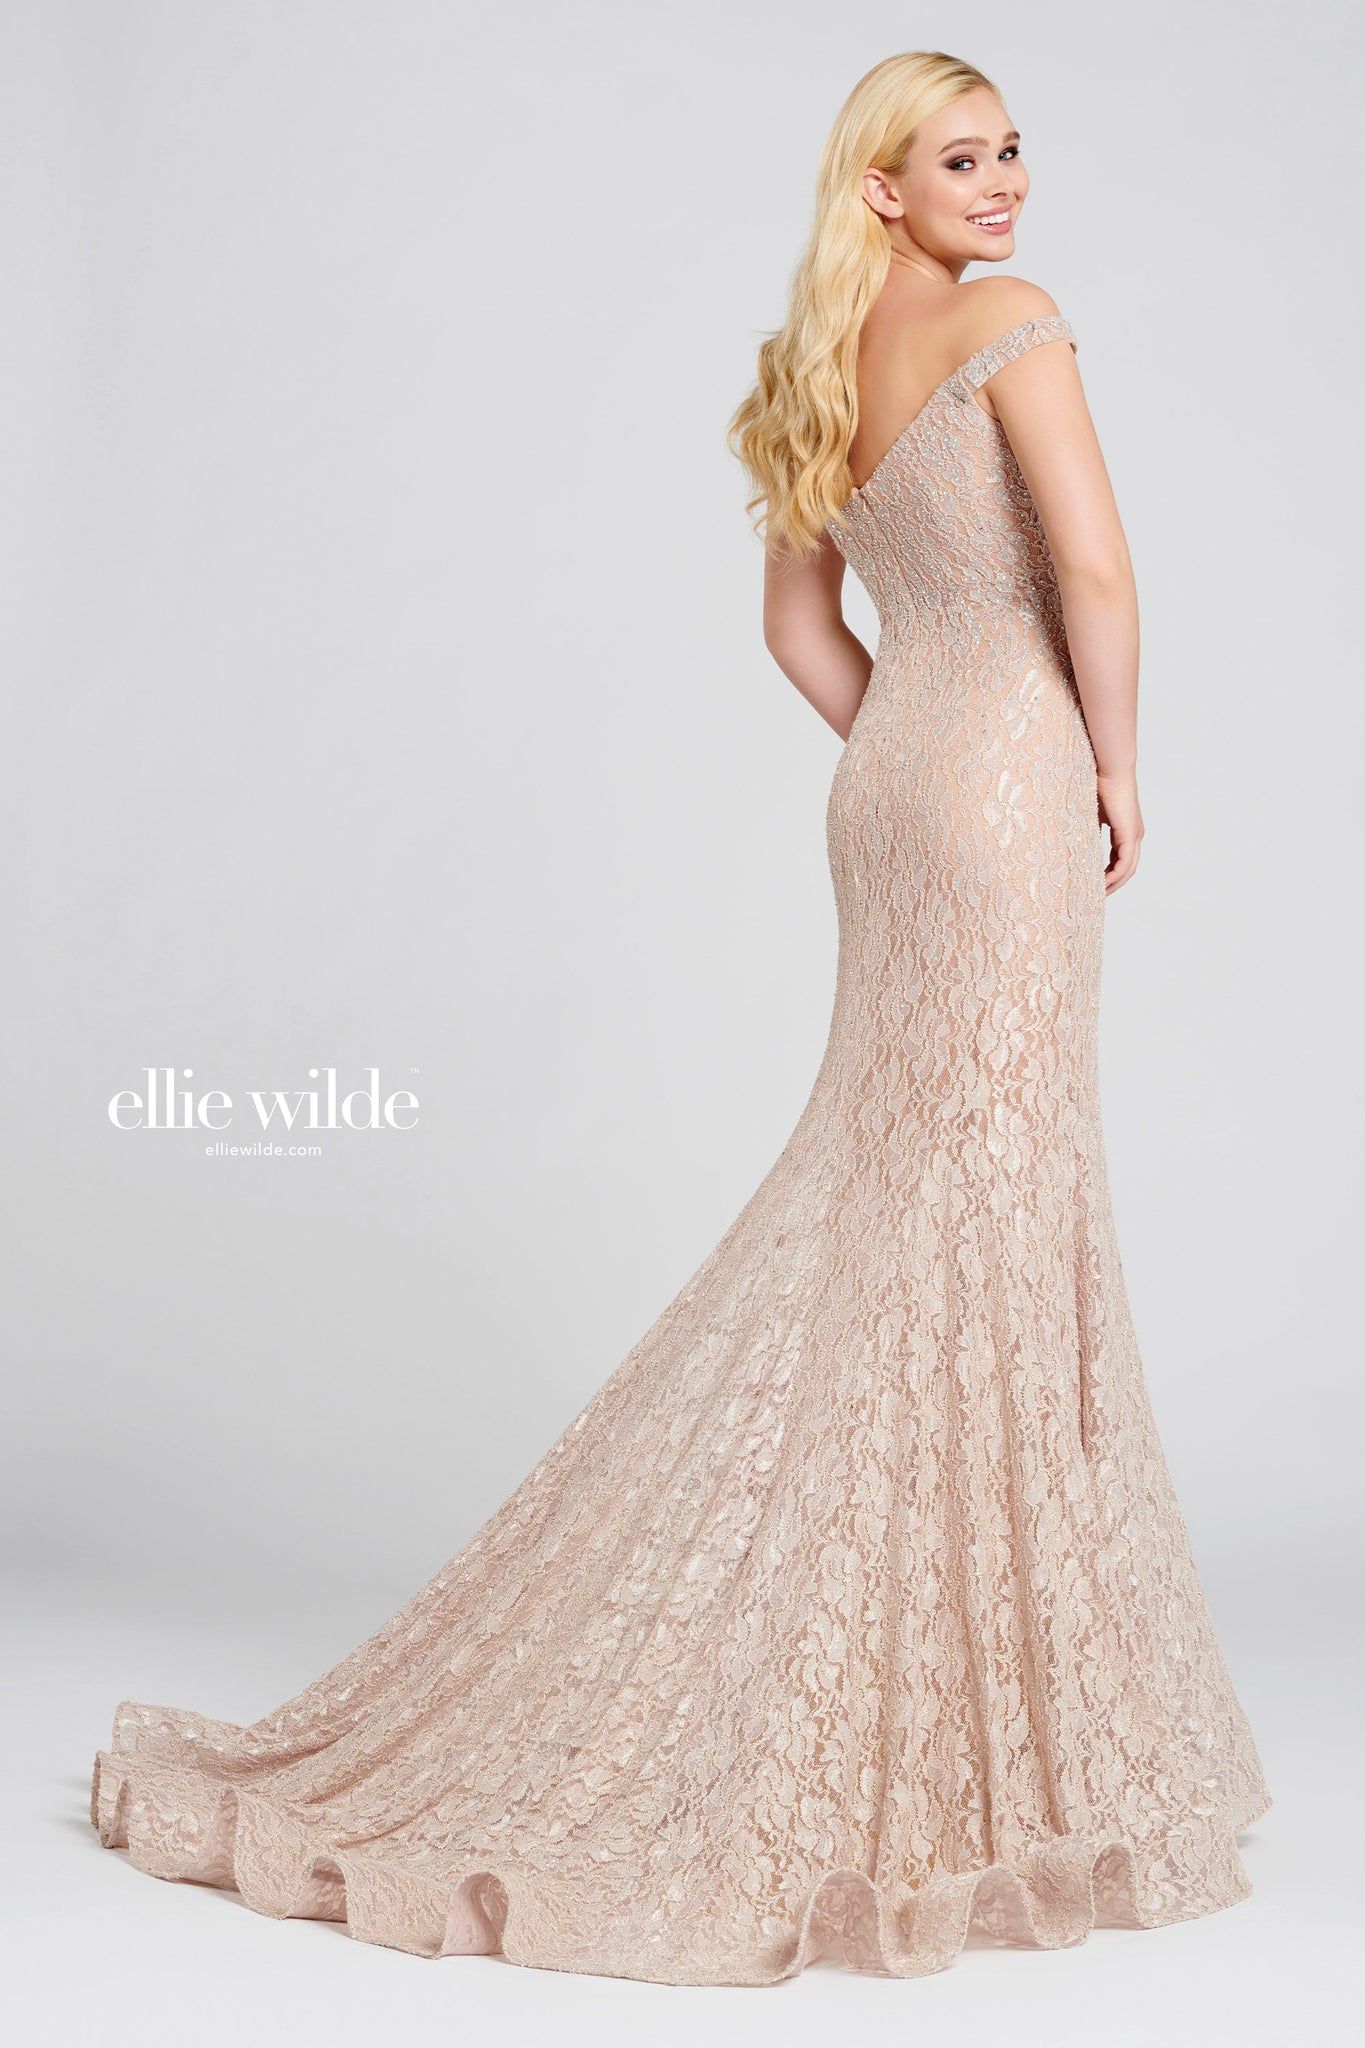 Ellie Wilde Sand Lace Evening Gown - Gissings Boutique